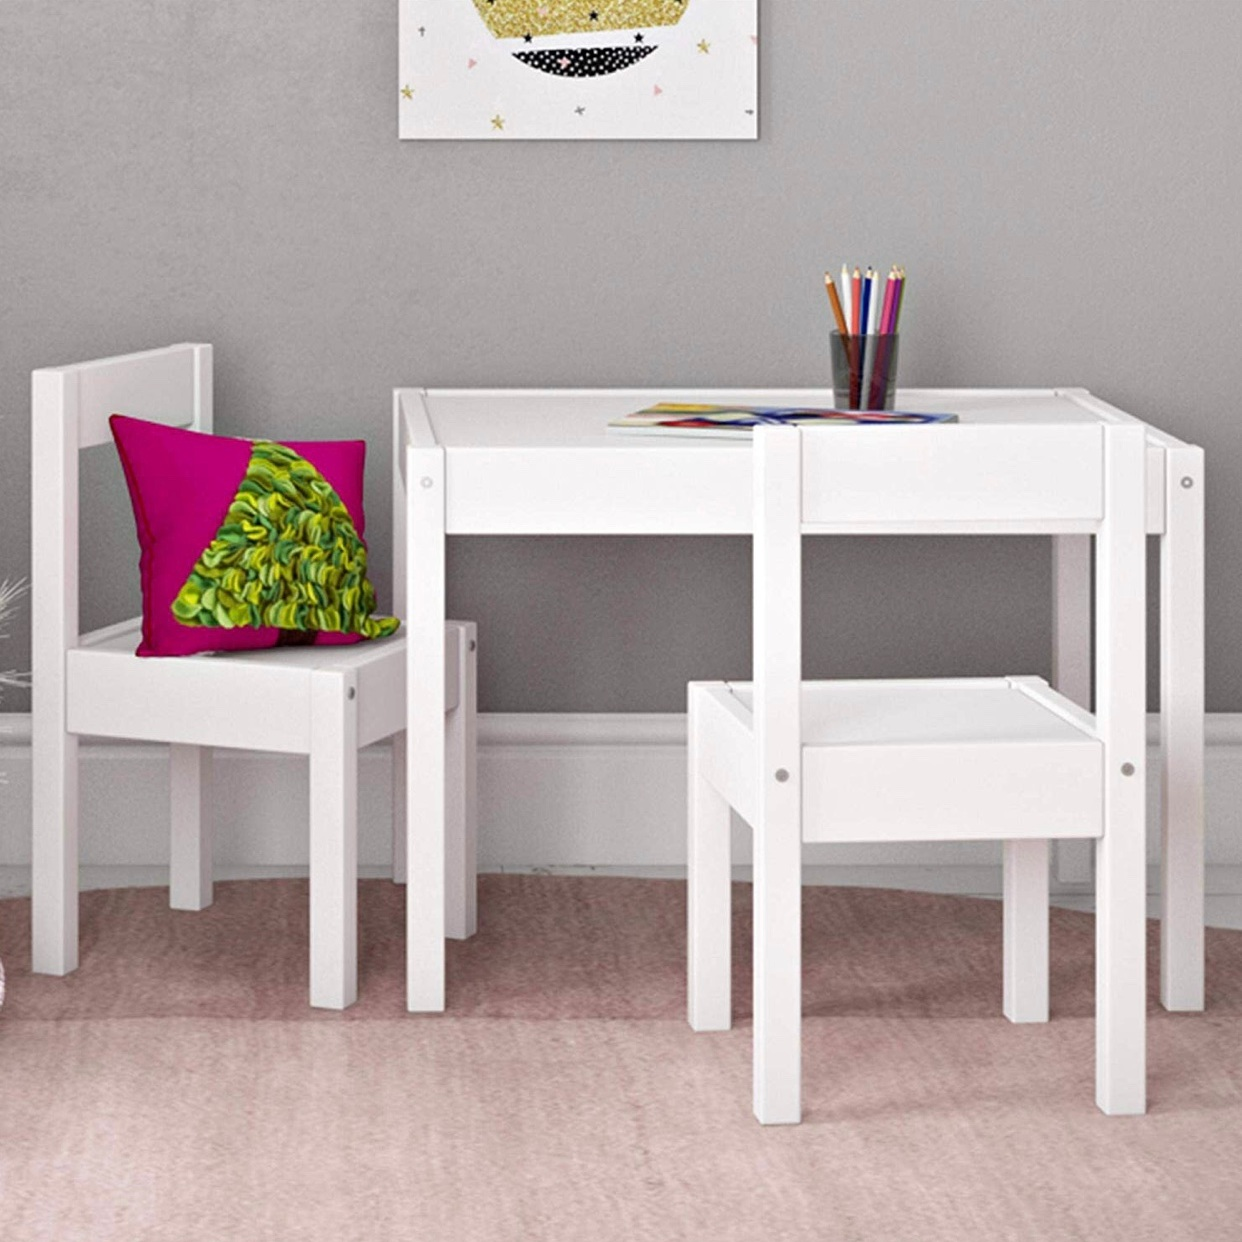 - Caroline and Caleb's new table and chairs for the playroom is perfect! Sturdy, just the right height for their ages, and a great price point!Find it here.